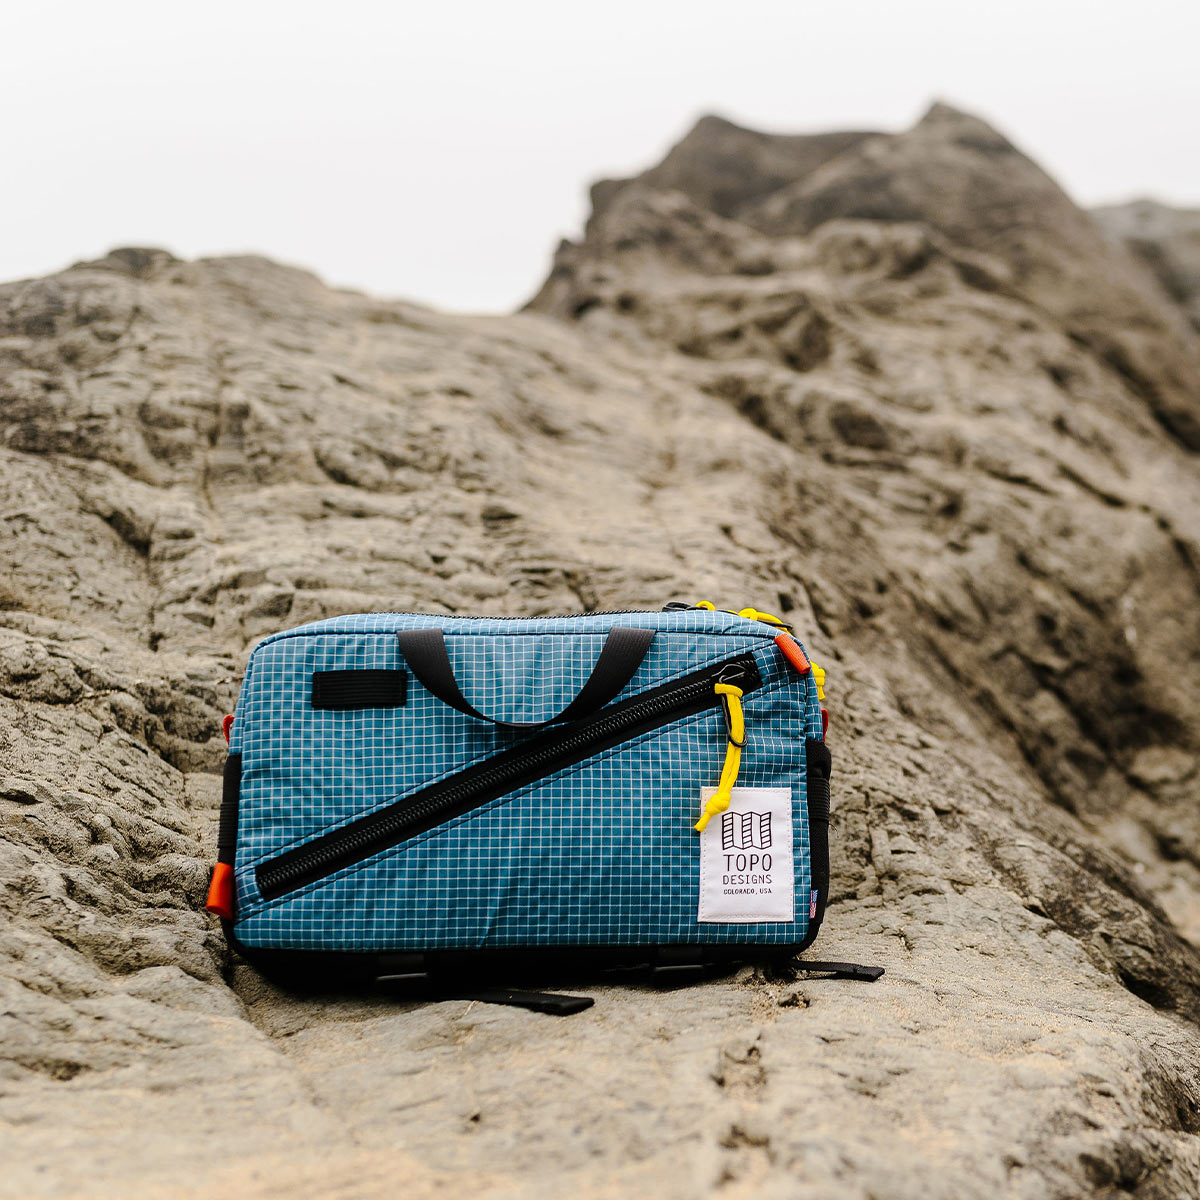 Topo Designs Quick Pack Blue/White Ripstop, Introducing Topo Designs secure travel bag